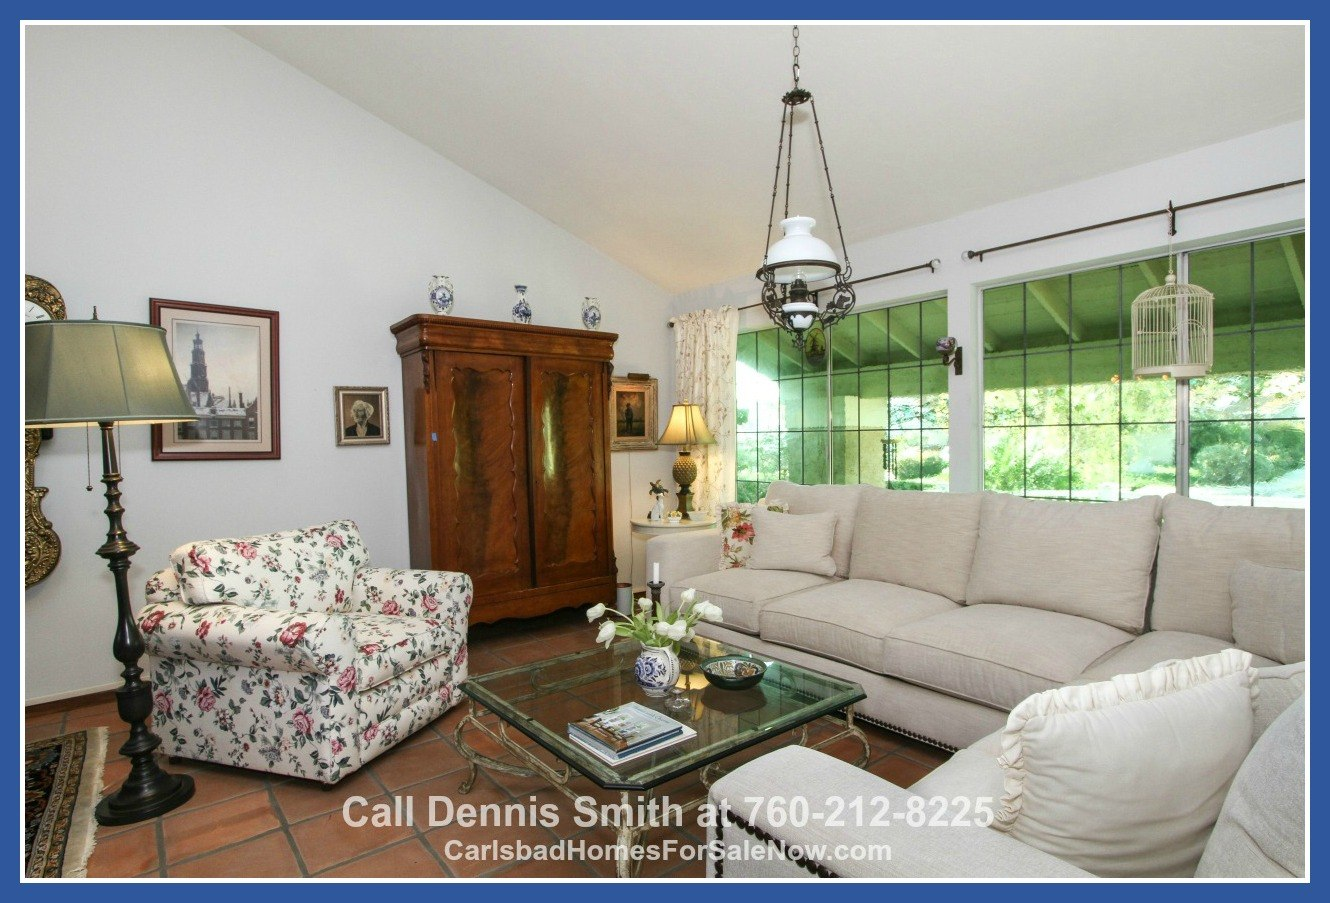 Home for Sale in Encinitas CA